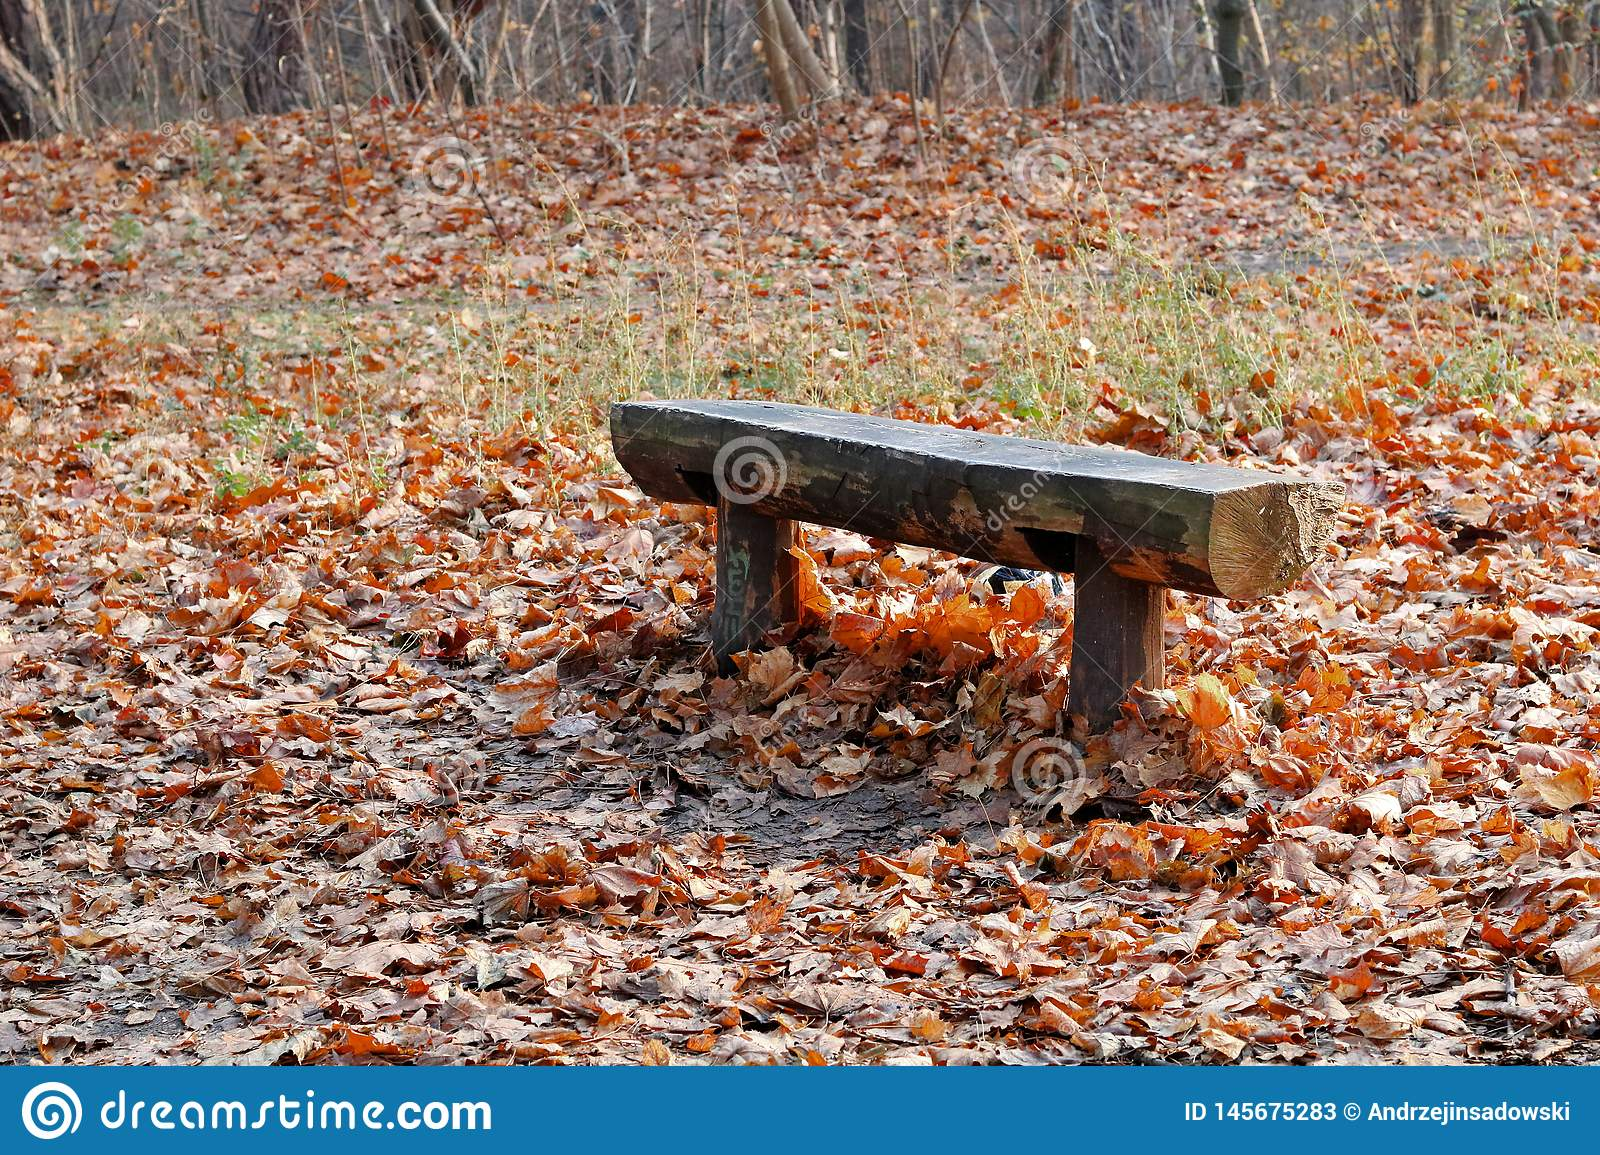 A bench that has been standing in the forest for many years